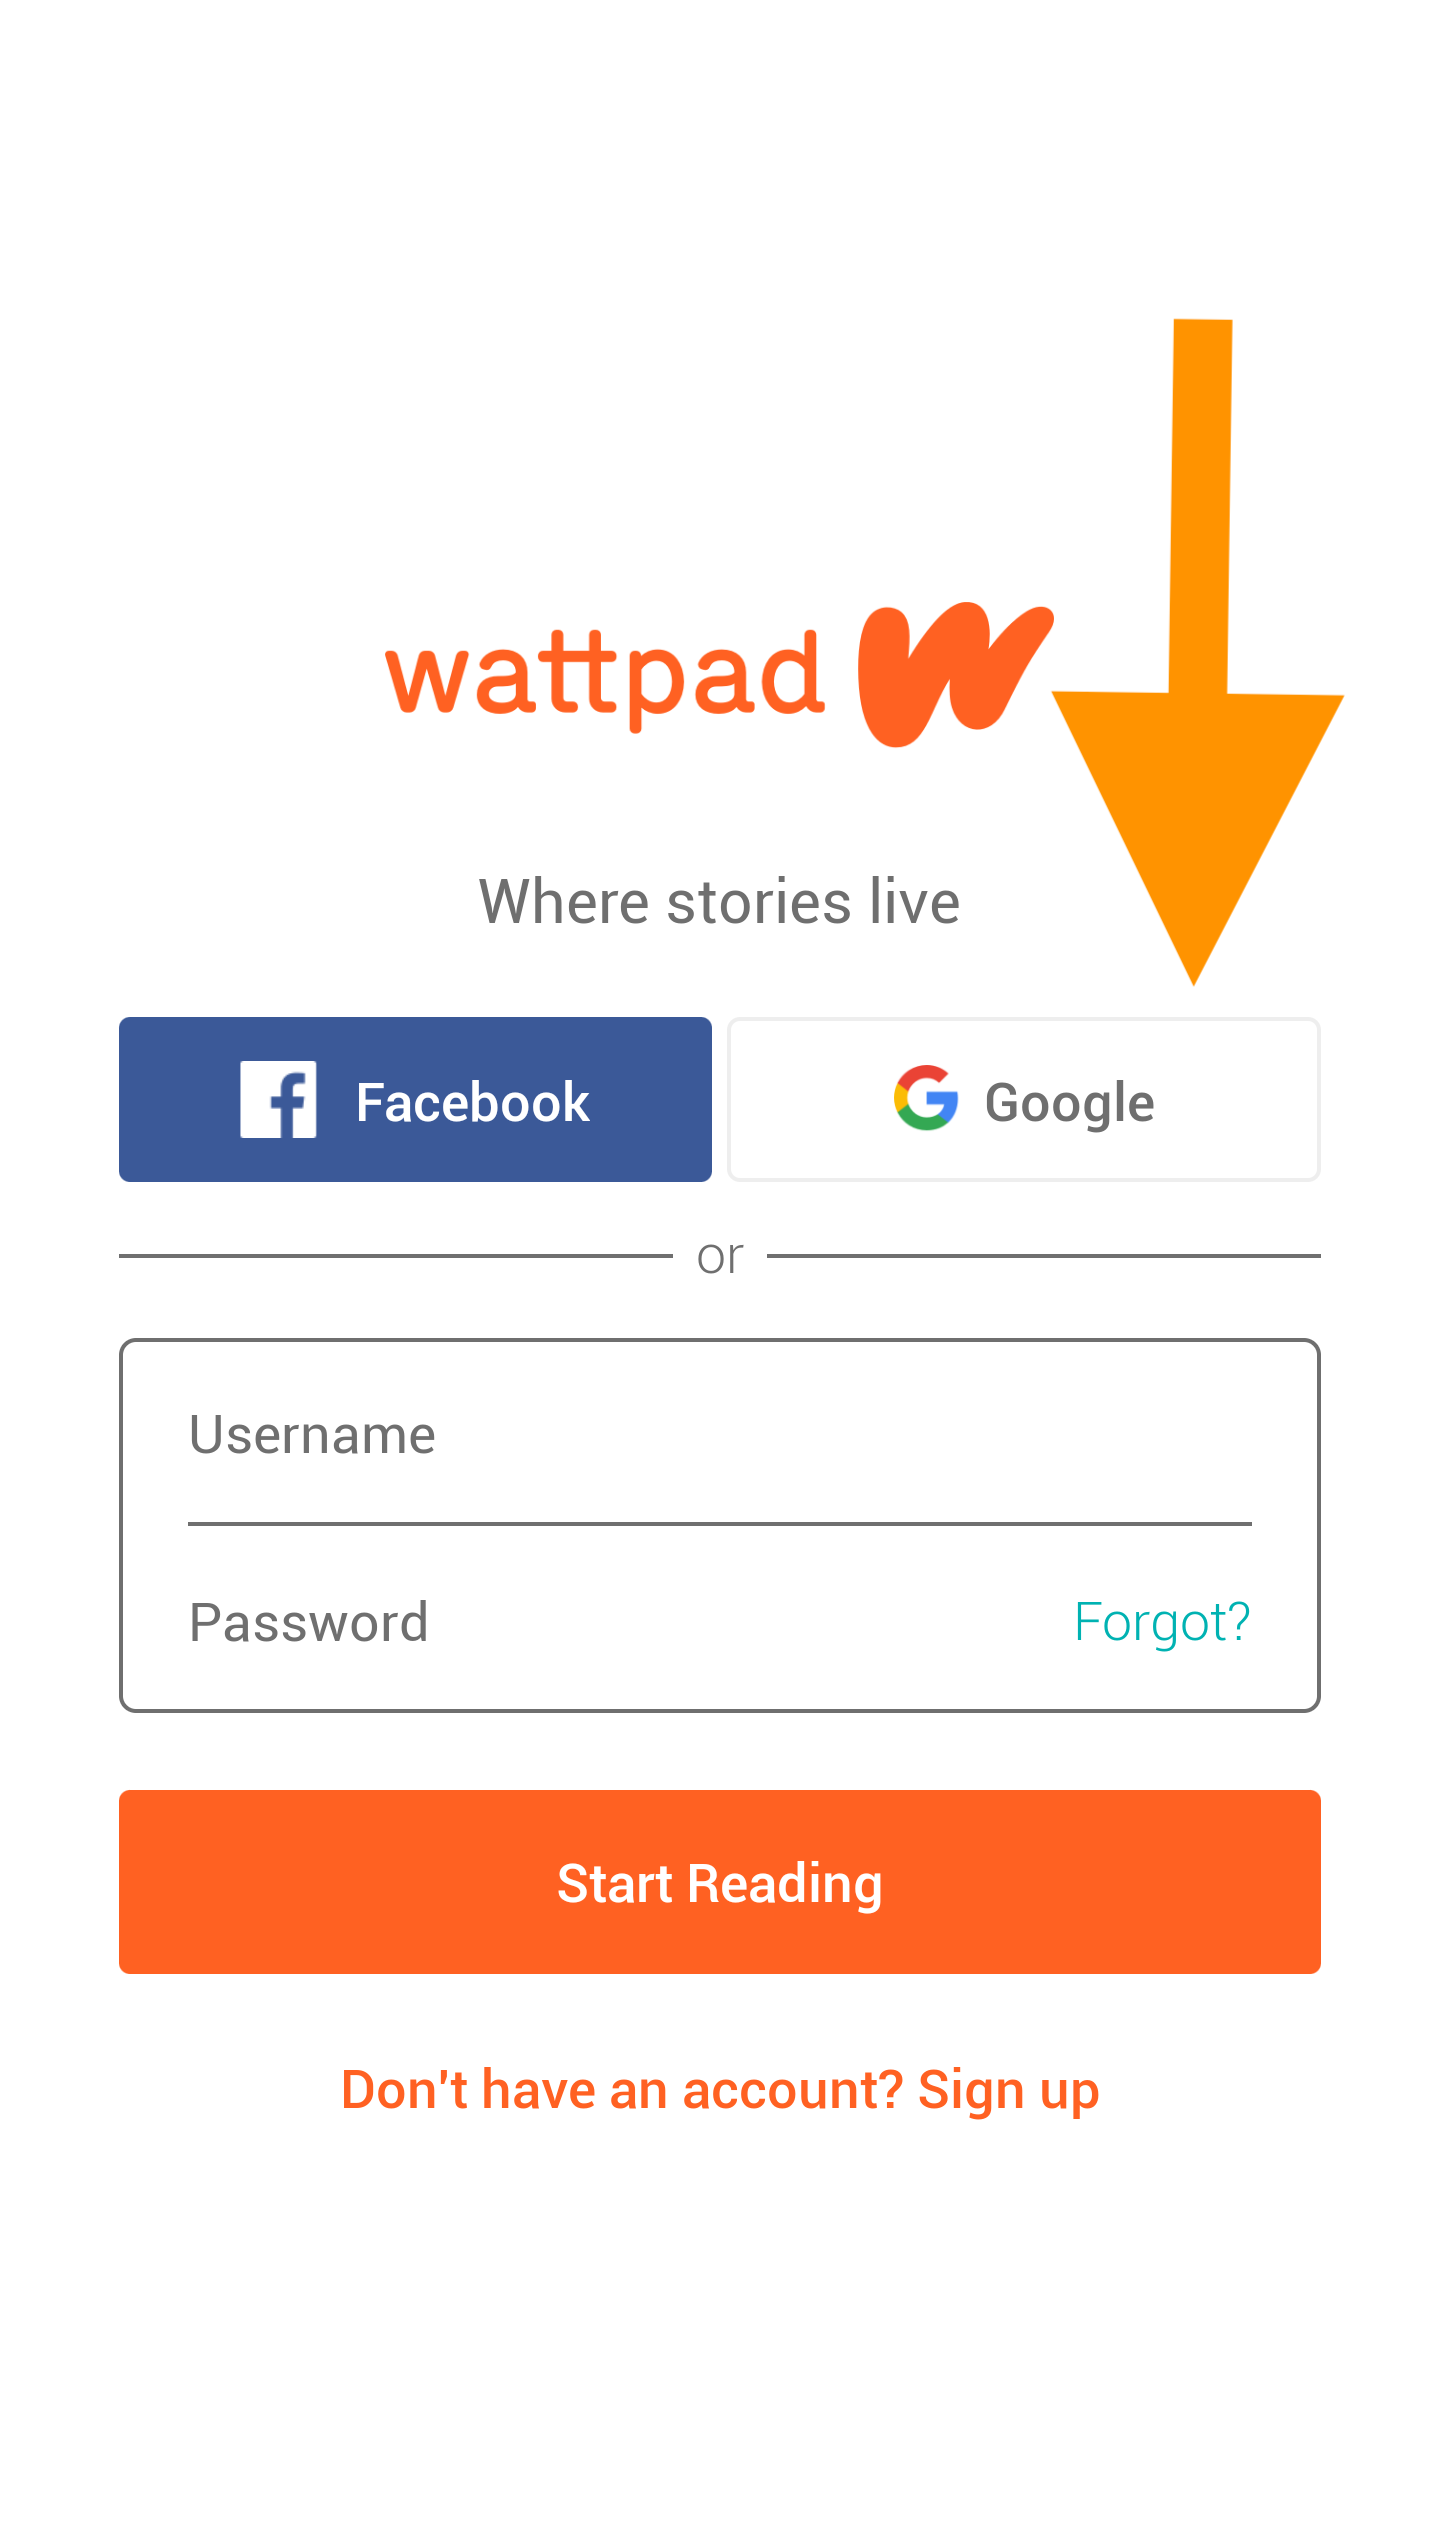 Screenshot of the Wattpad sign-up page with a large arrow pointing at the Google button. The button is located beneath the main logo and on the right of the Facebook button.